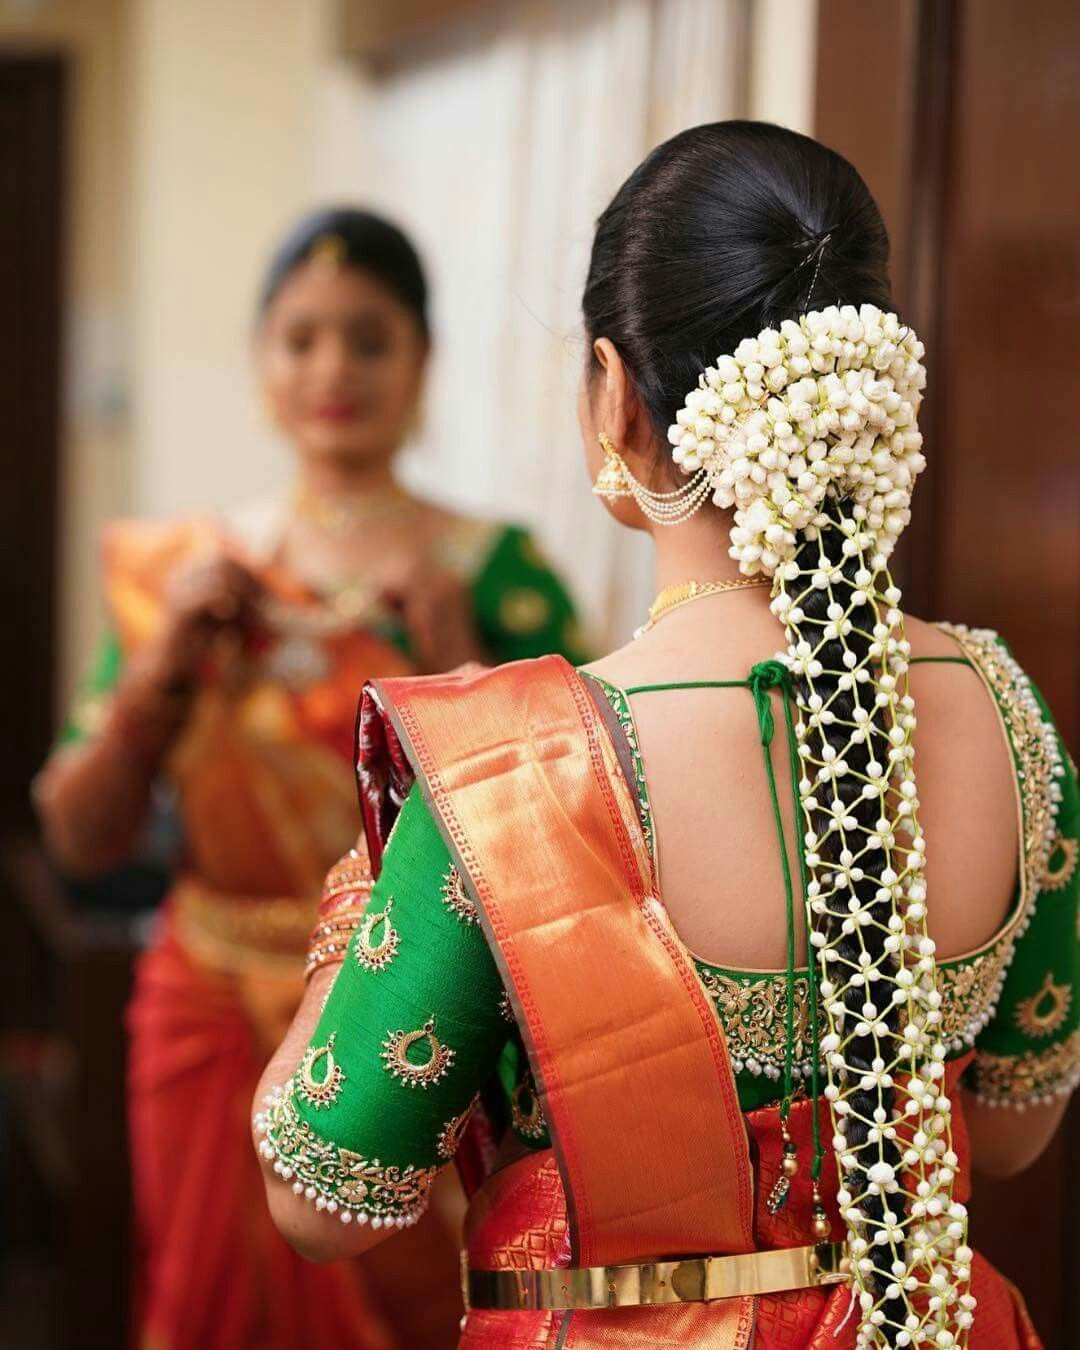 South Indian Wedding Hairstyles For Long Hair Couture Hairstyle In In 2020 South Indian Wedding Hairstyles Indian Wedding Hairstyles Bridal Hairstyle Indian Wedding